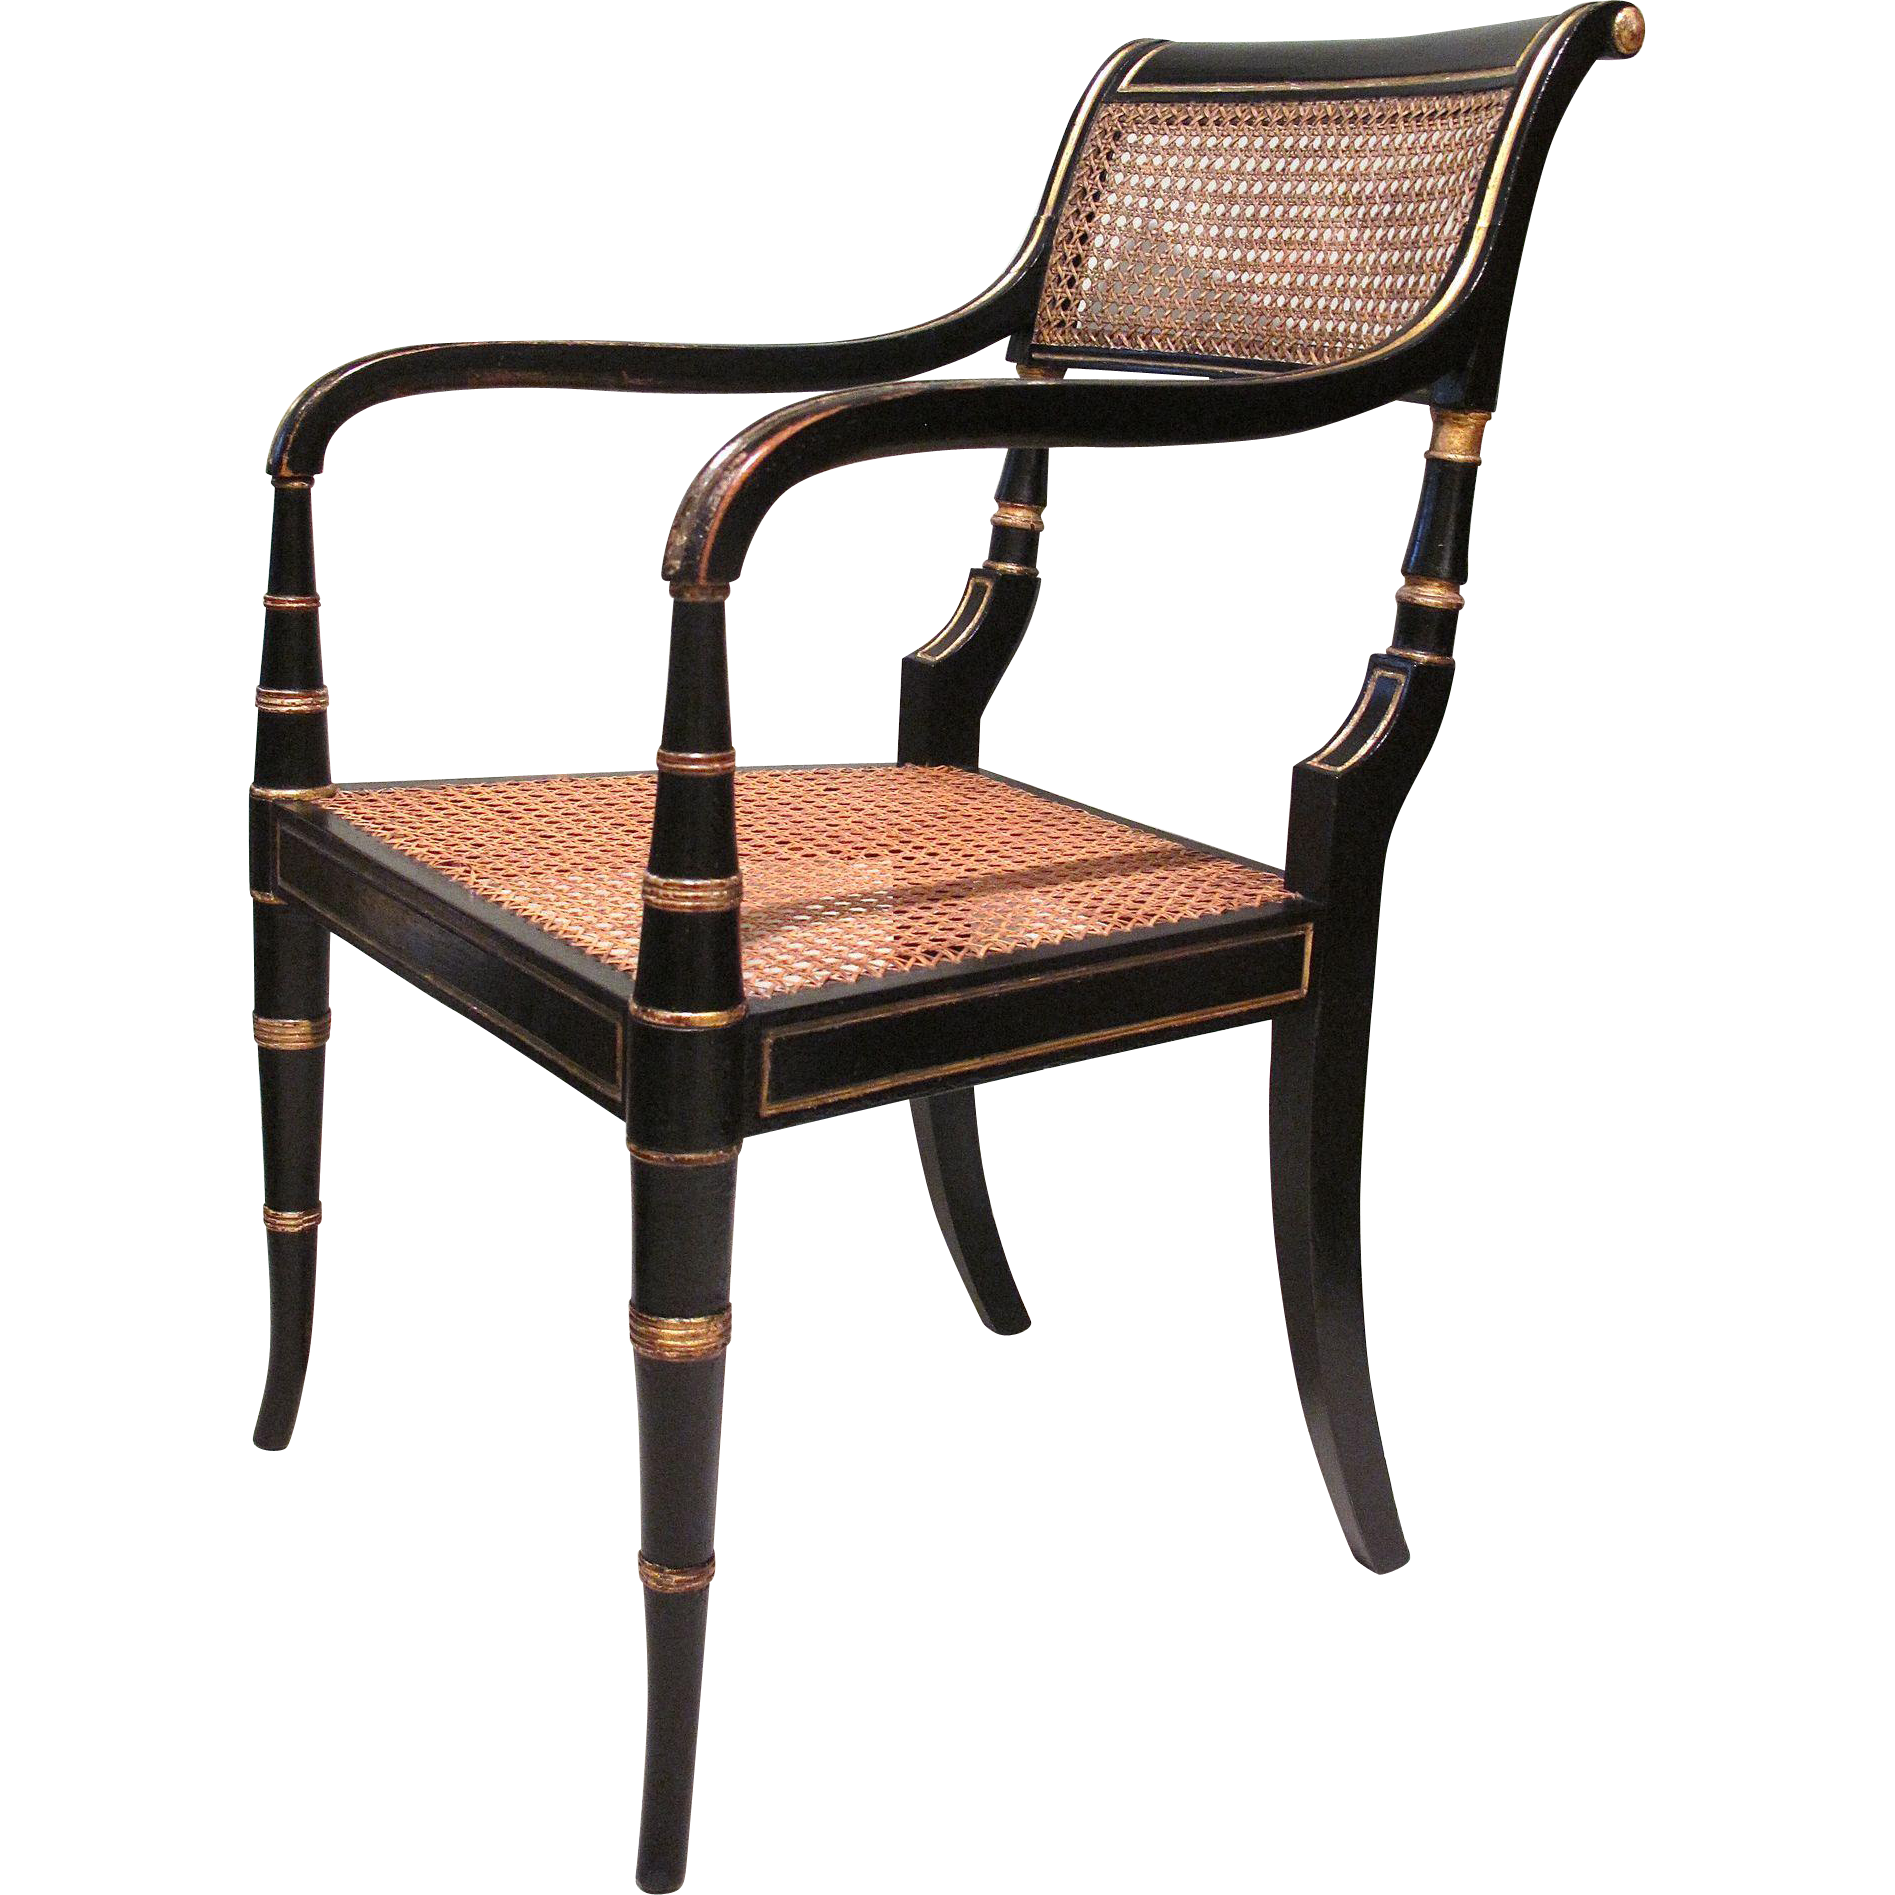 An elegant black japan painted and parcel gilt armchair, ca. 1810, with backswept rear legs and back. Retains most of its original gilding. Front legs